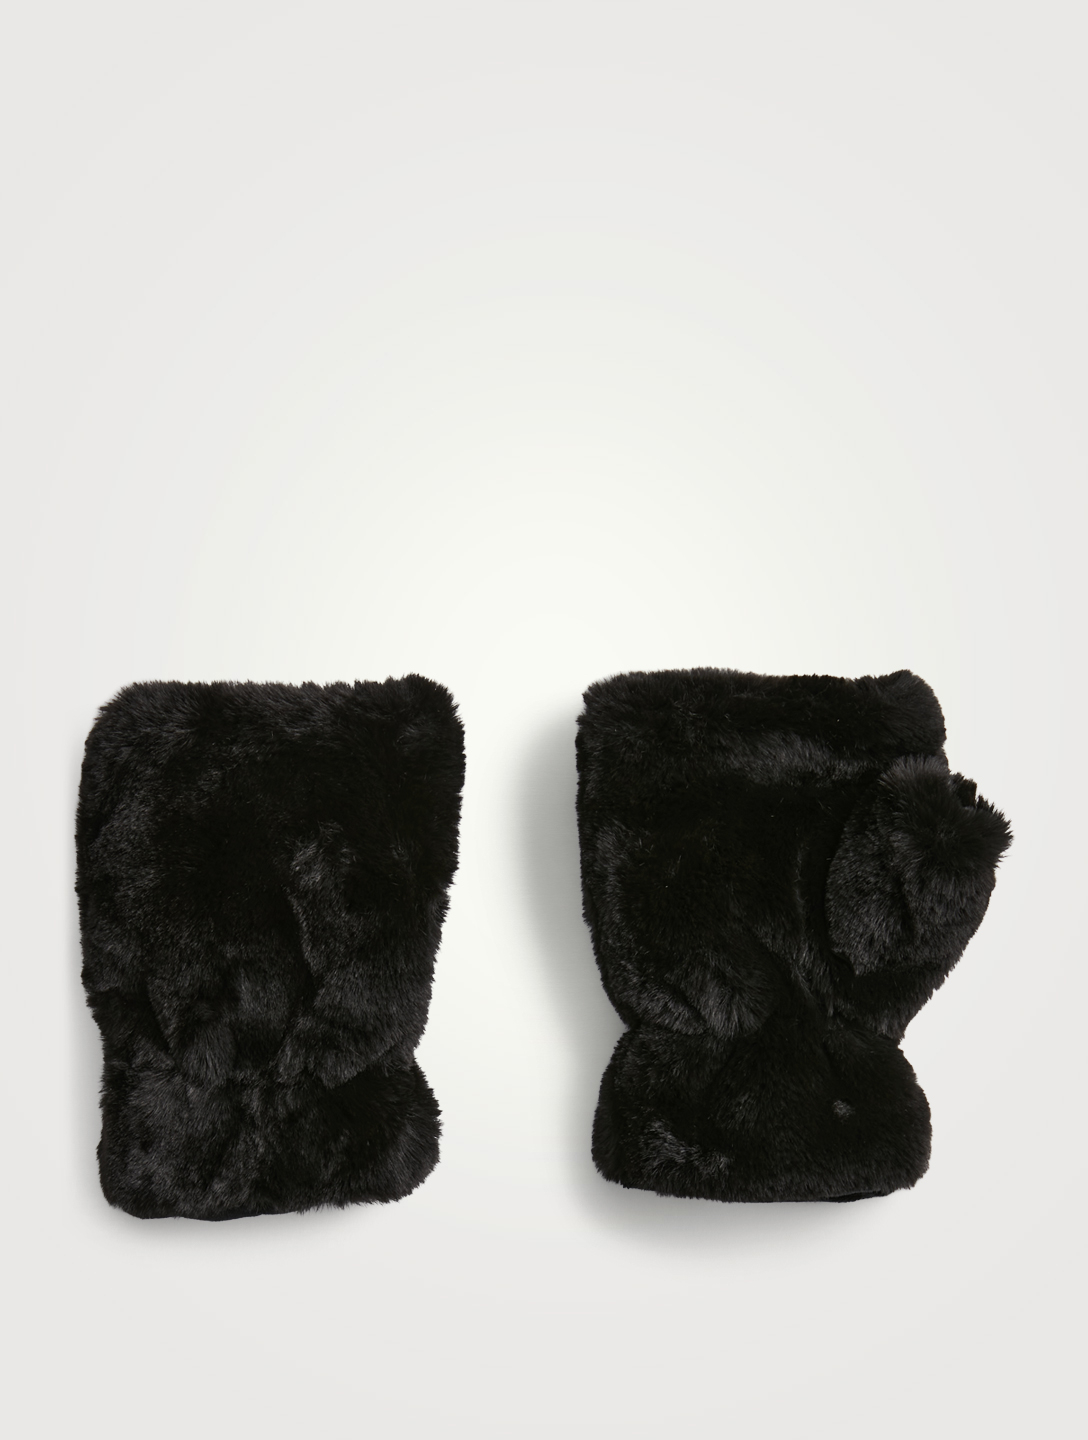 APPARIS Ariel Recycled Faux Fur Gloves Women's Black